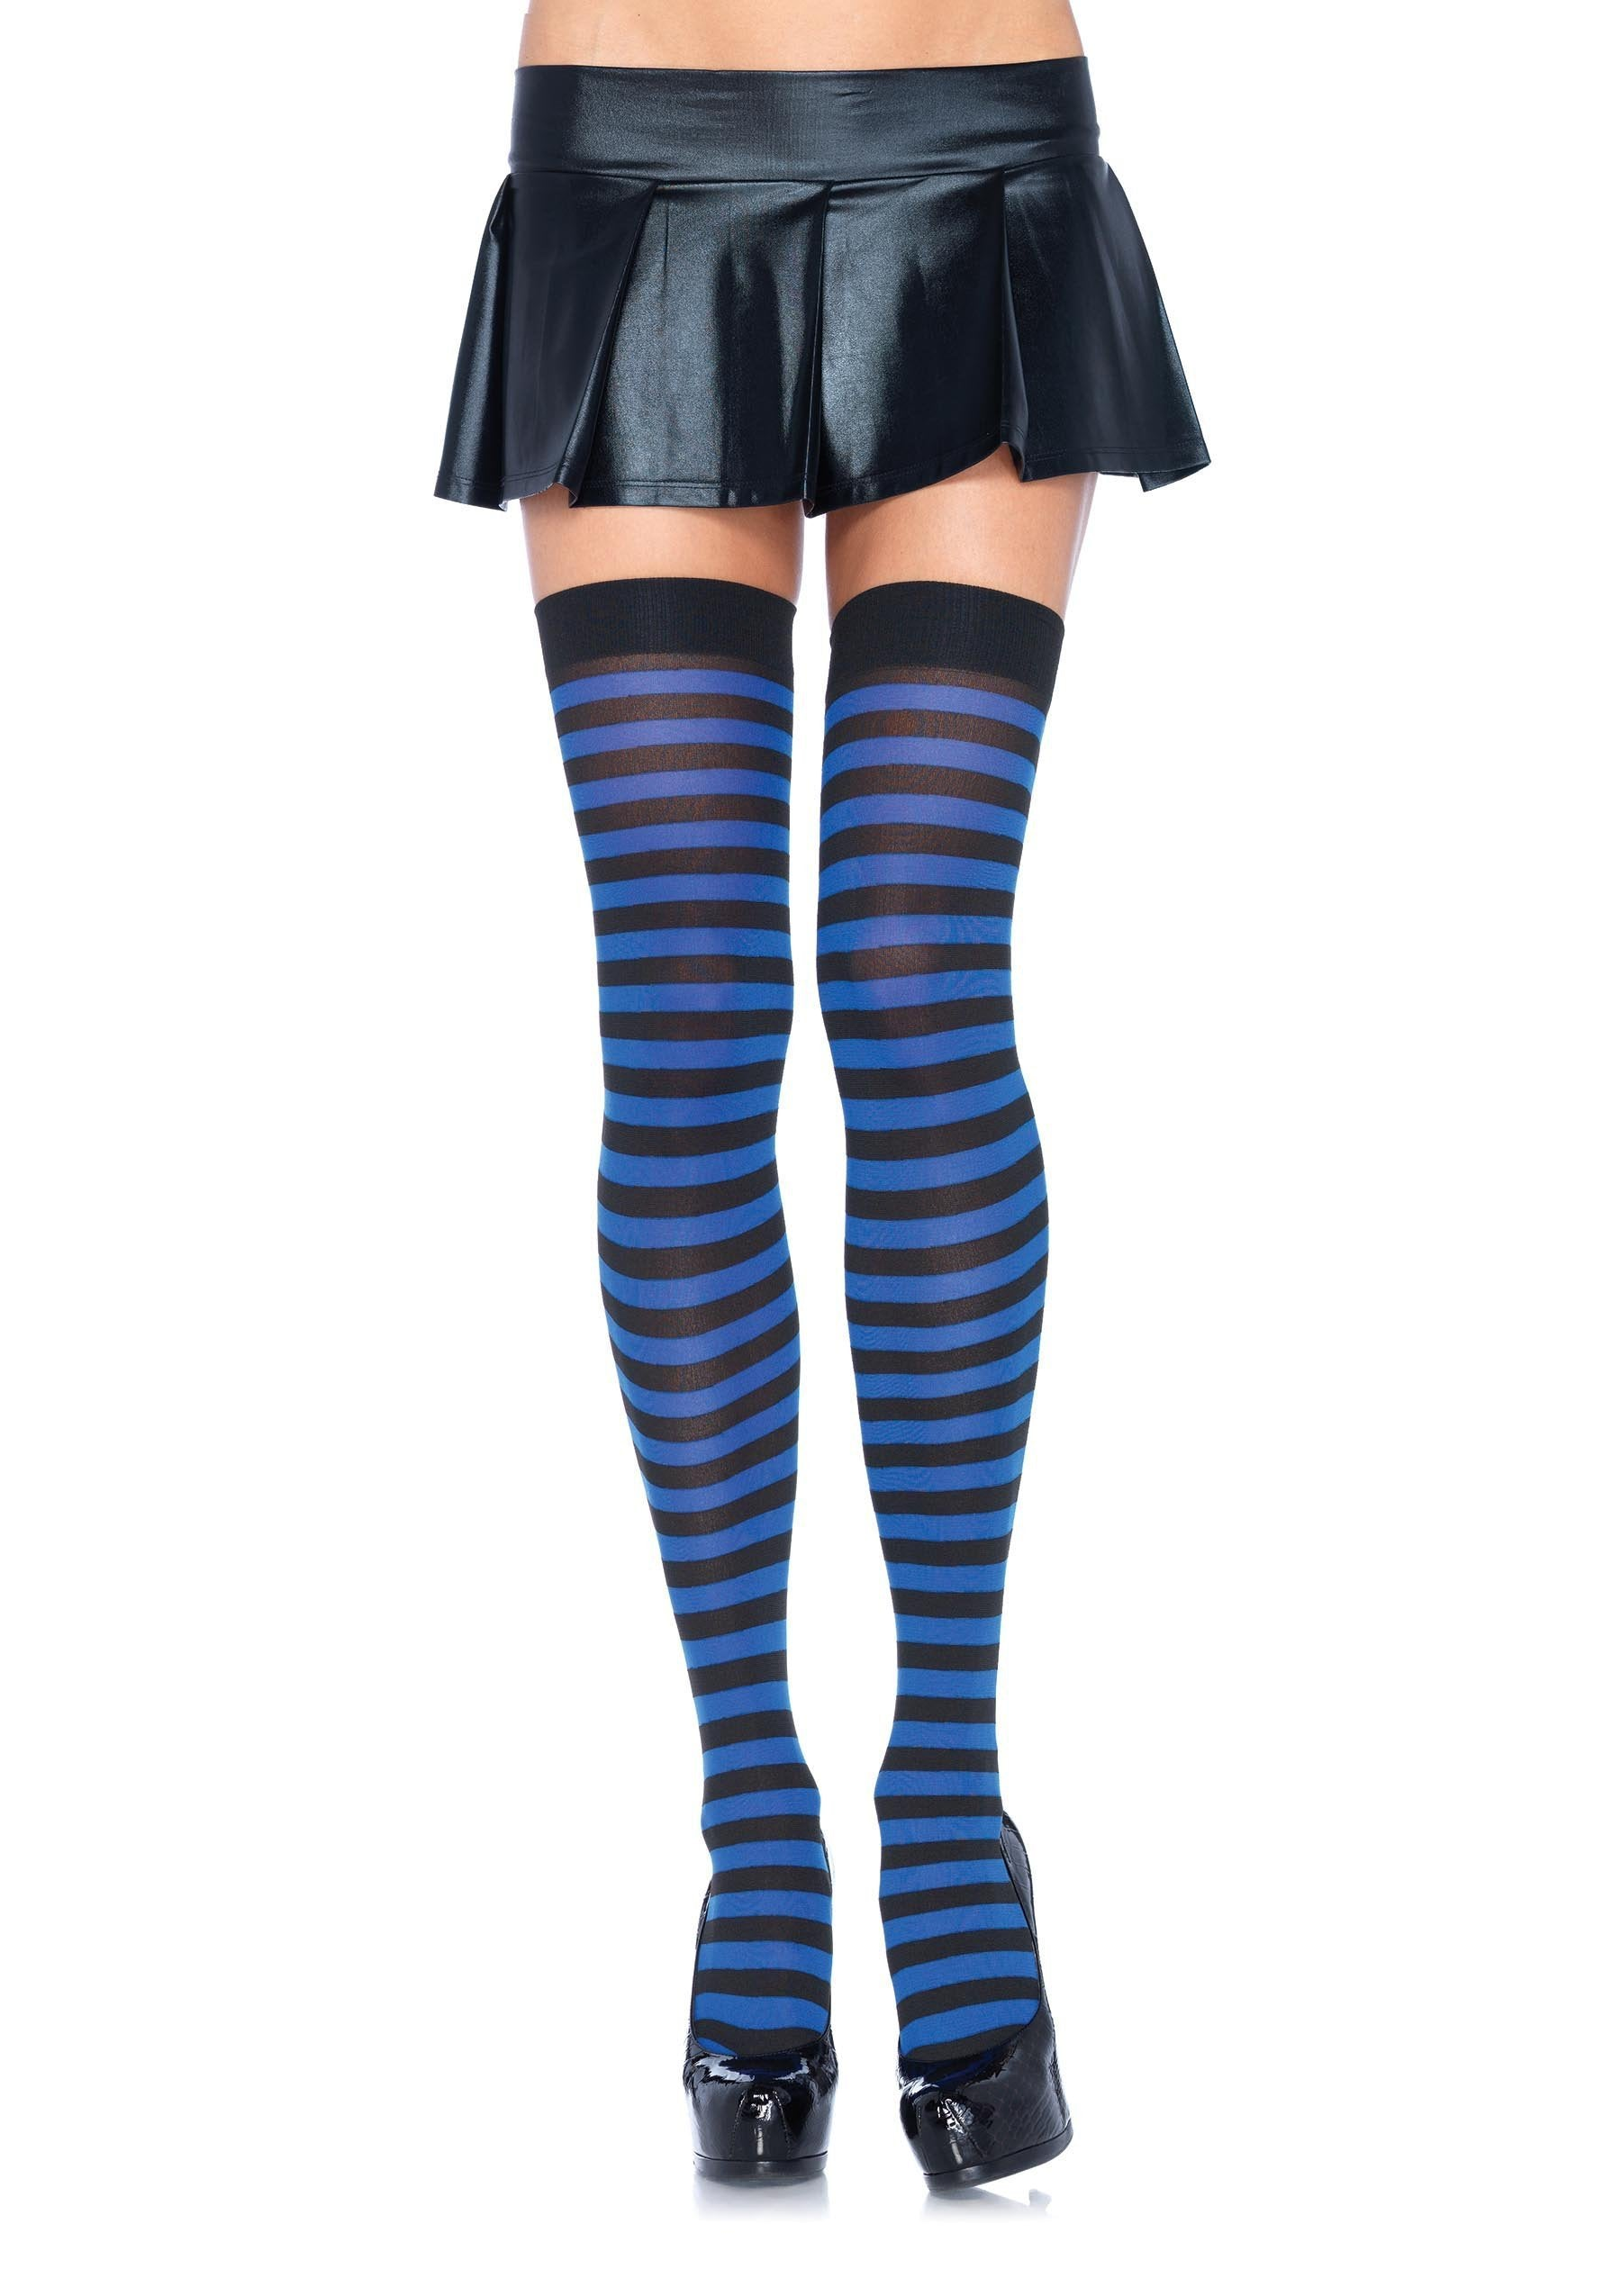 Leg Avenue Costume Accessories BLACK/ROYA / O/S Striped Thigh High Stockings